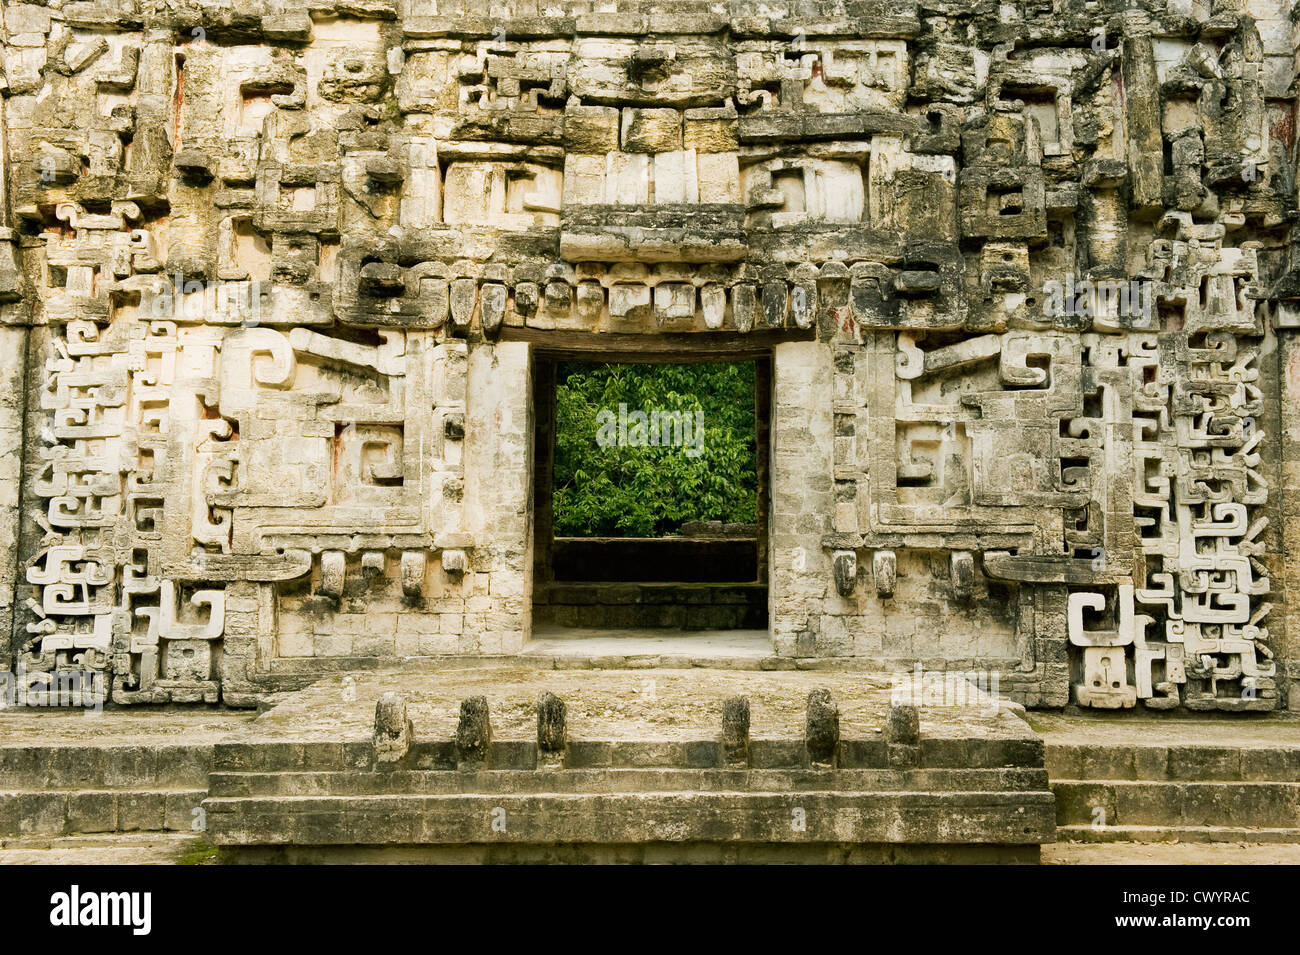 Maya Ruins of Chicanná (House of the Serpent Mouth) near Calakmul Biosphere Reserve, Yucatan Peninsula MEXICO - Stock Image